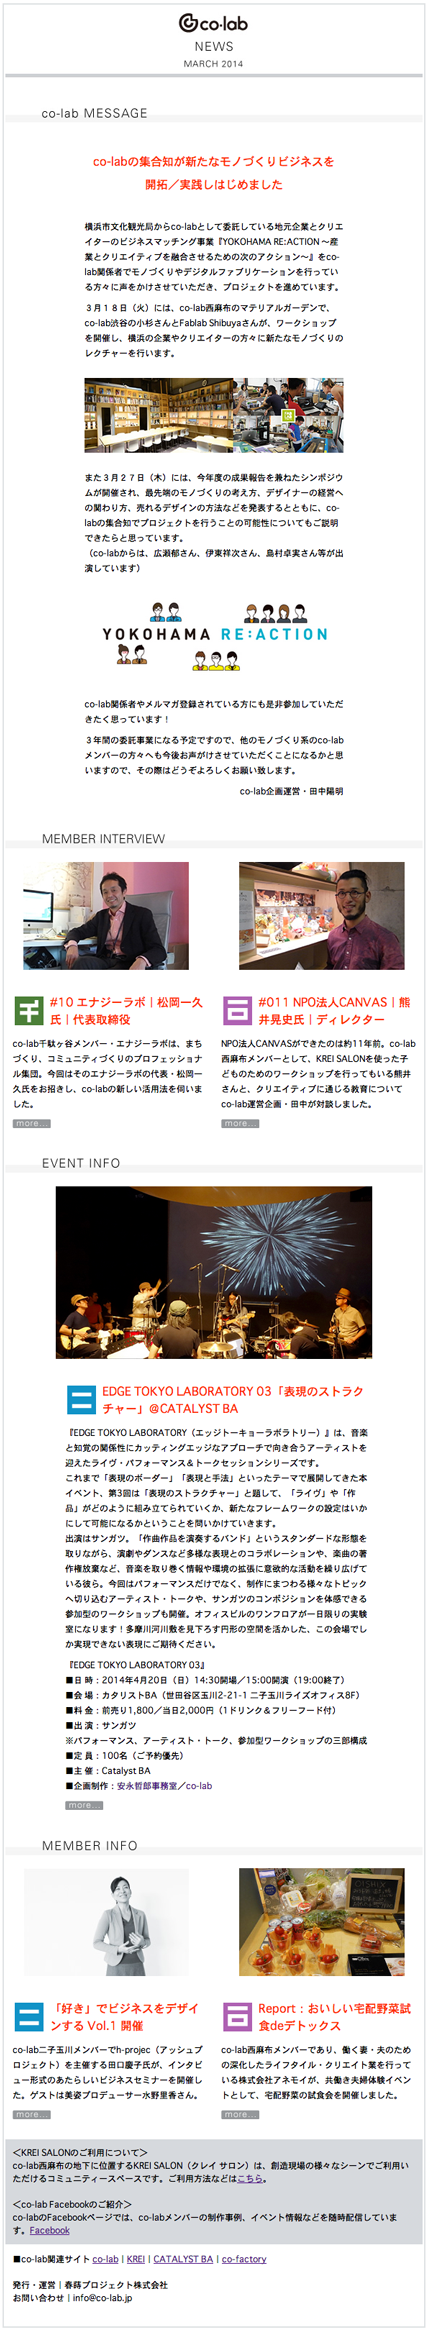 co-lab NEWS2014.03号